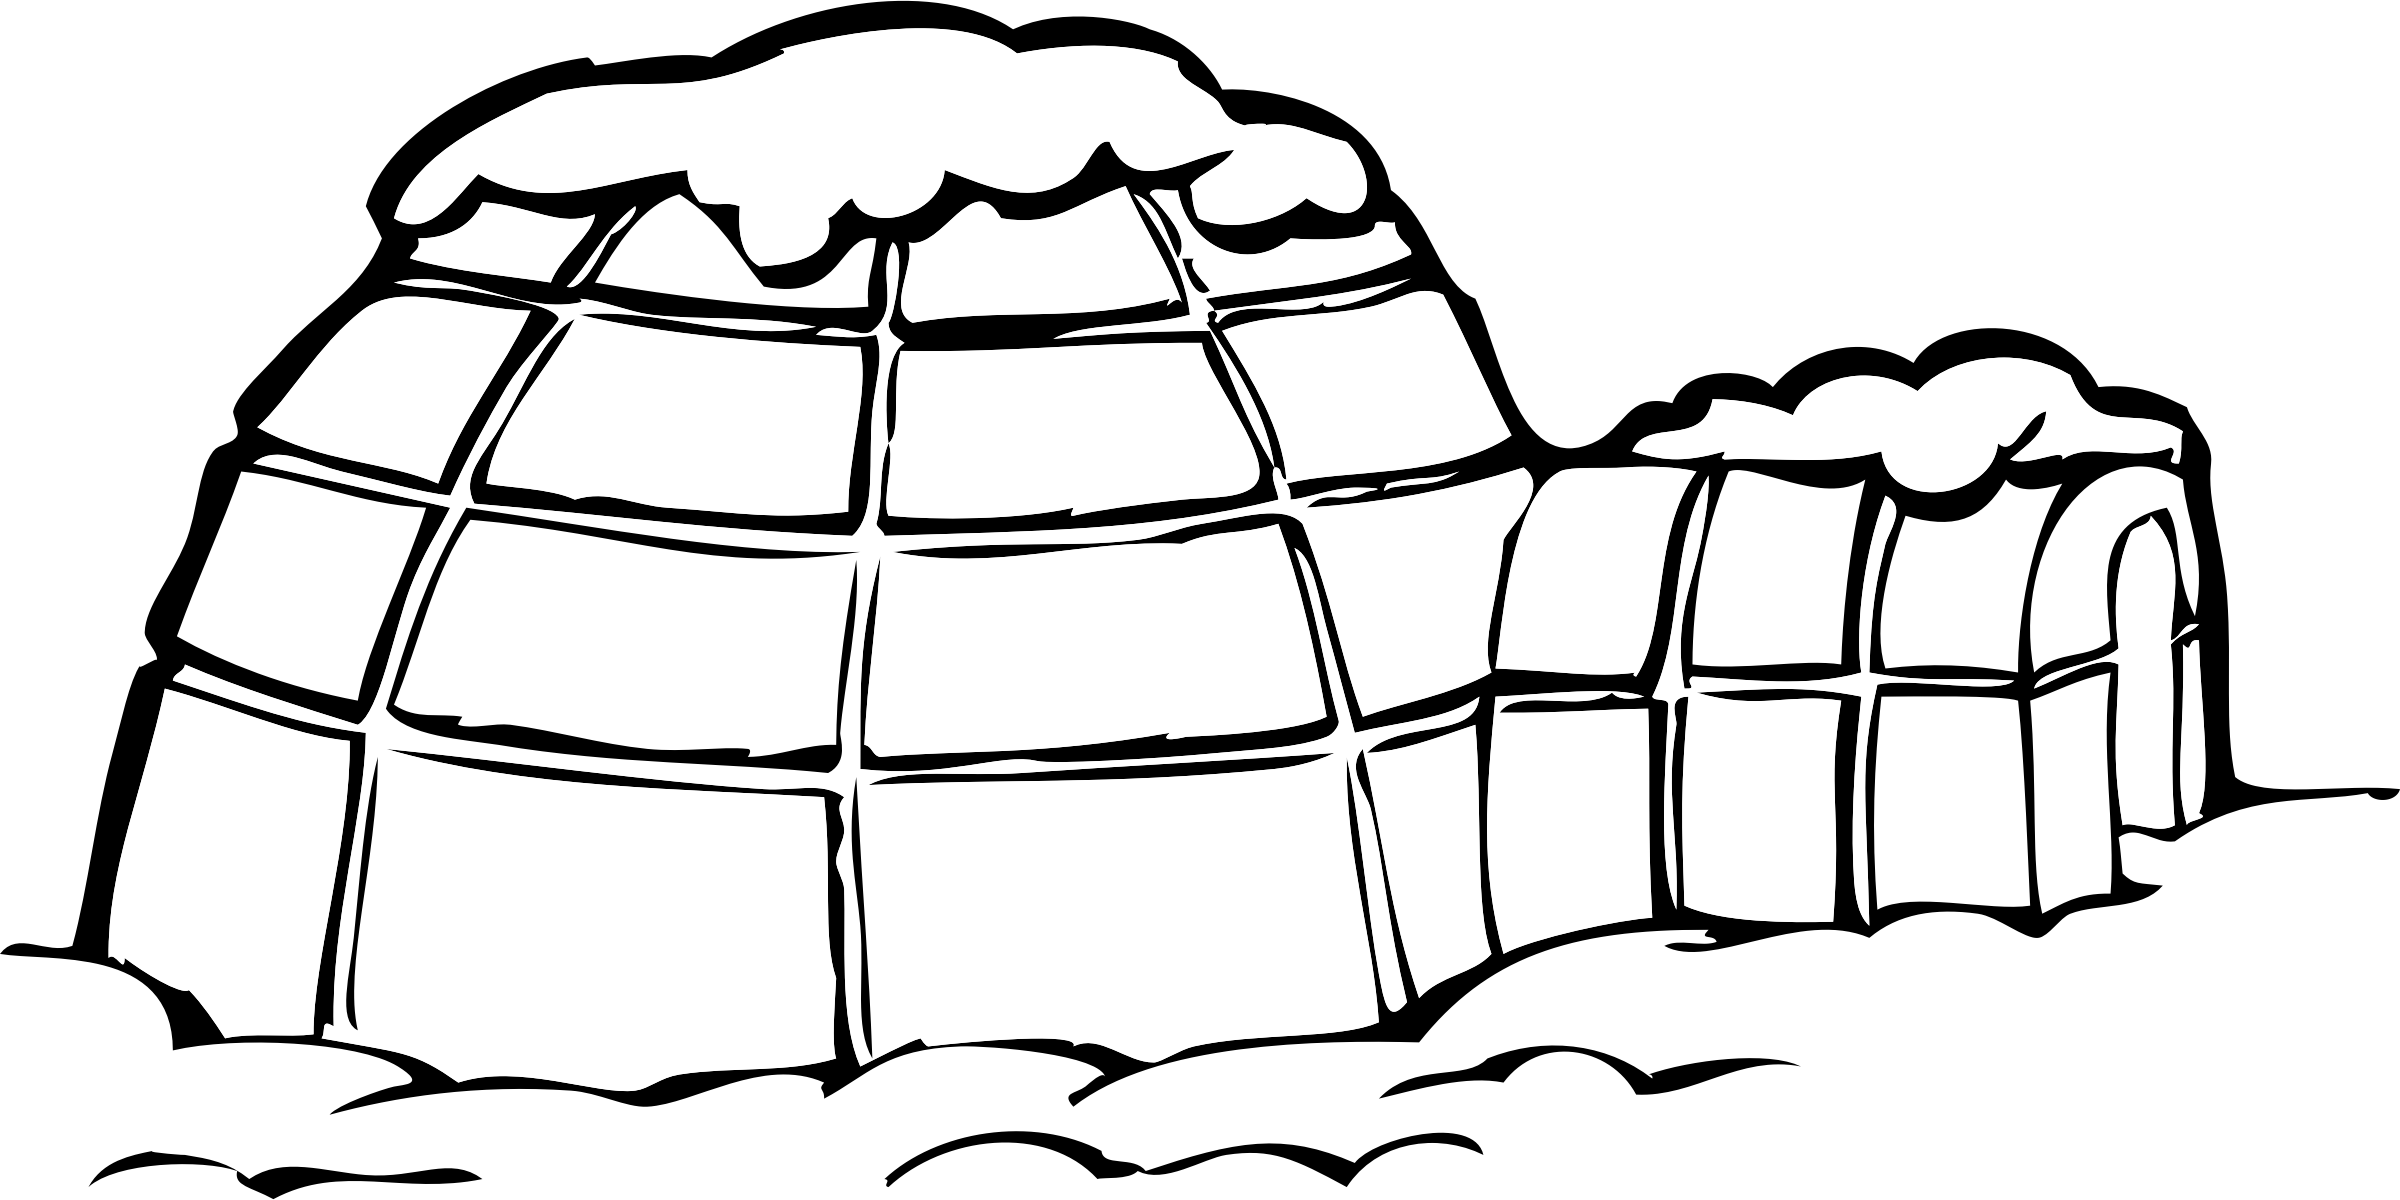 Clipart - igloo svg freeuse library